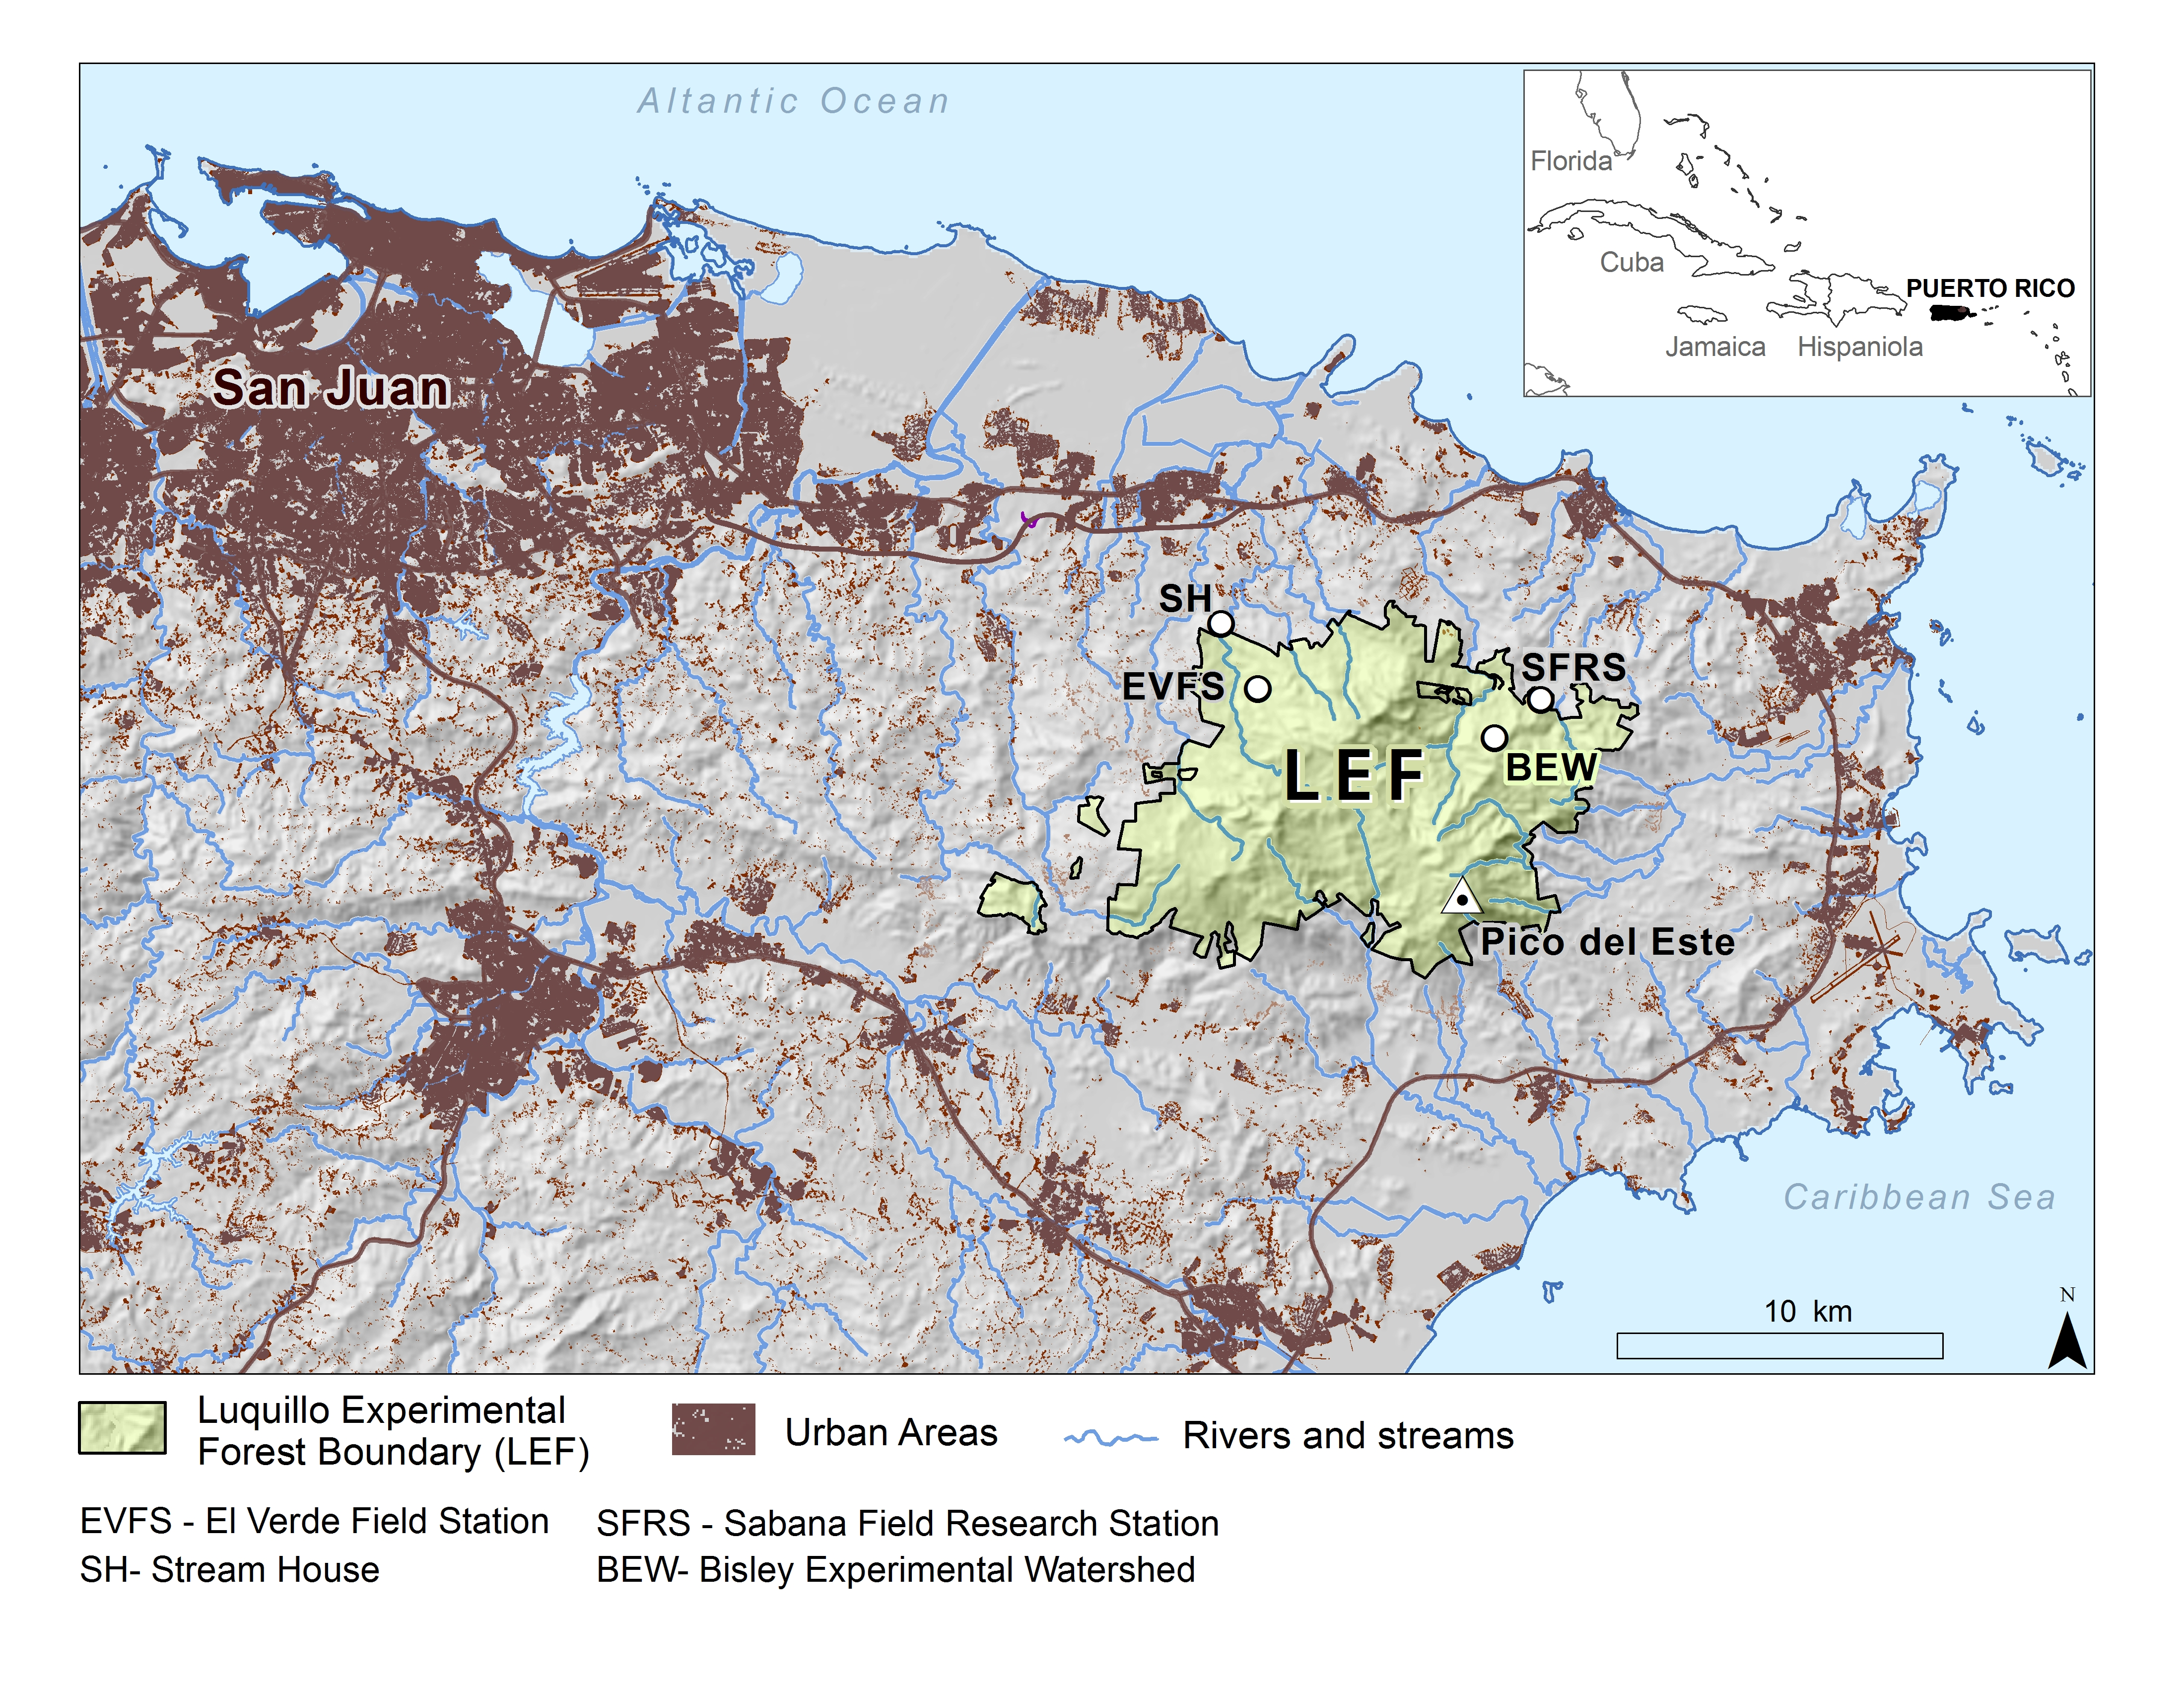 Map Of Florida Cuba And Puerto Rico.Maps And Images Luquillo Lter